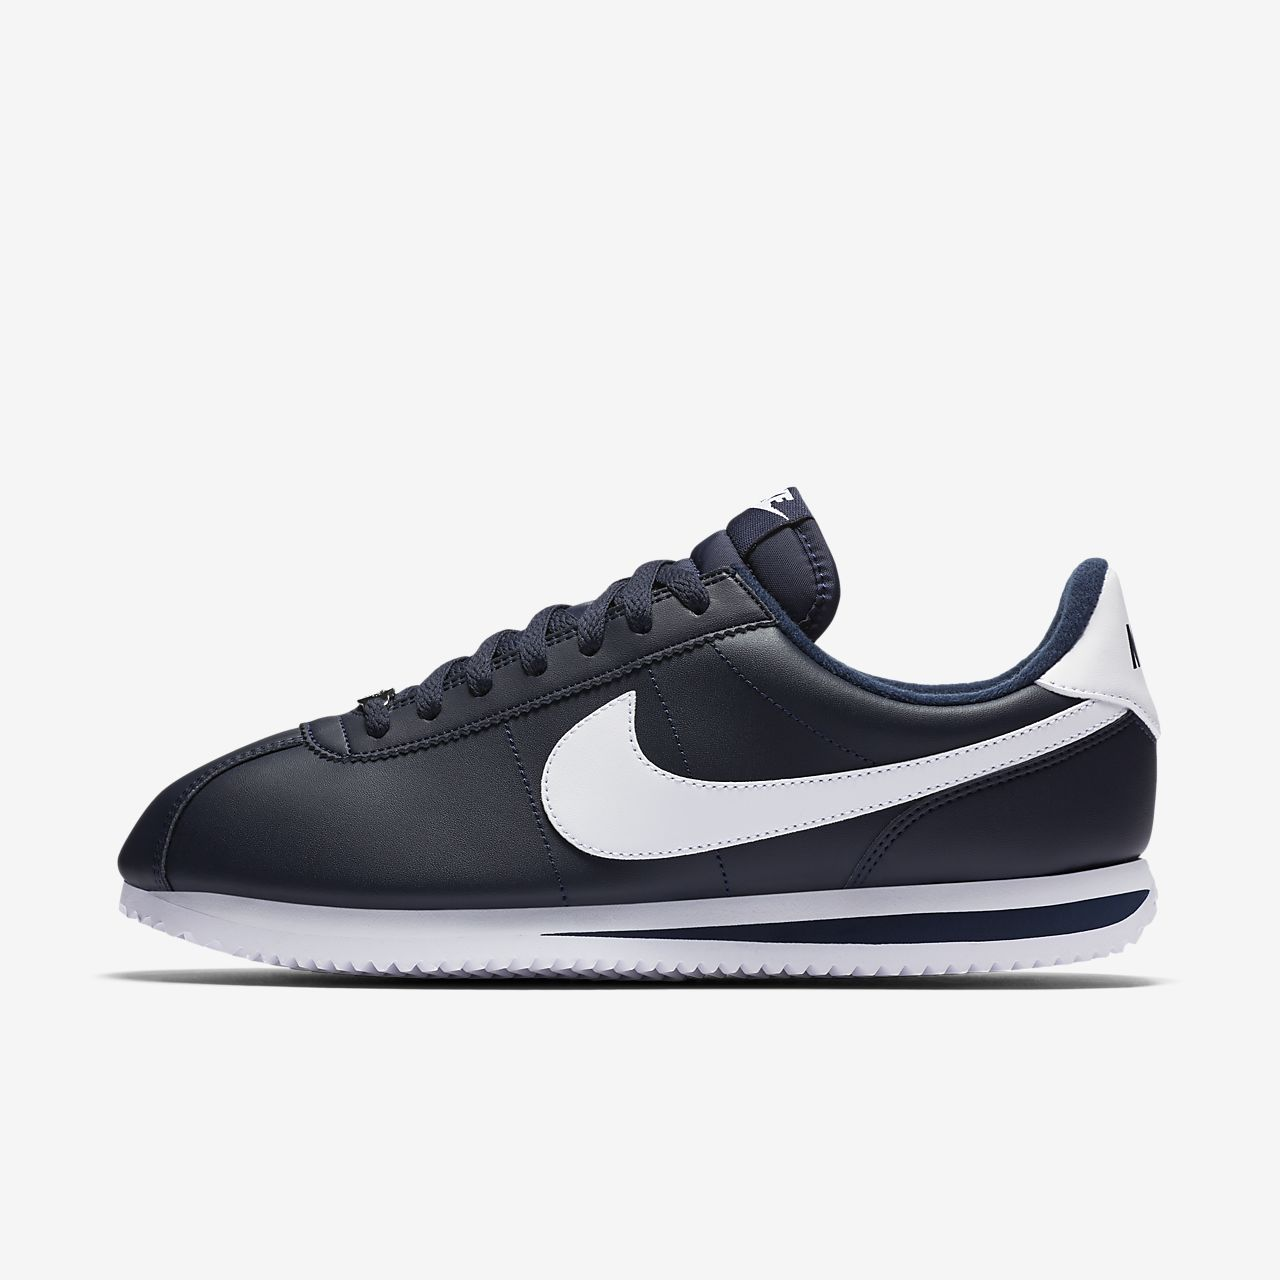 Classic Nike Shoes Black And White